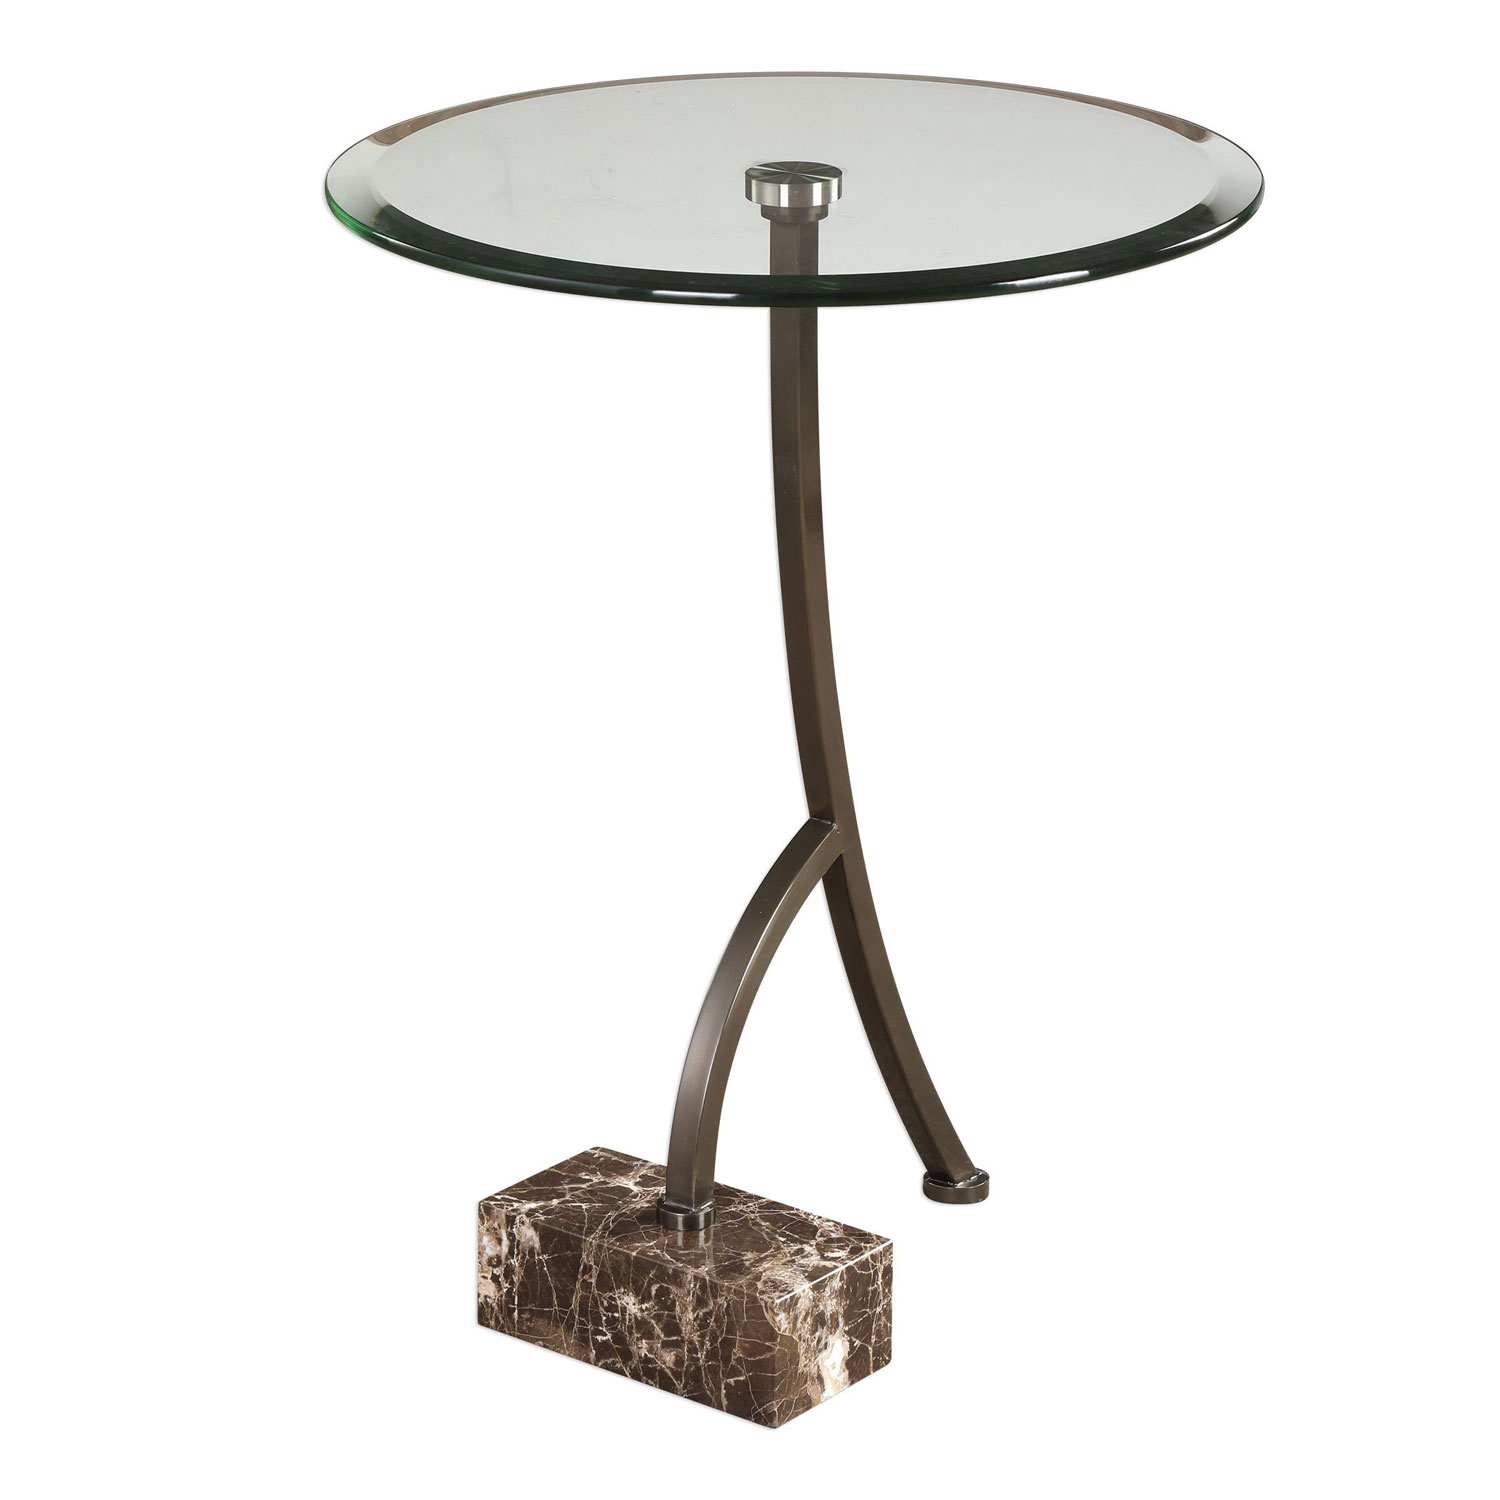 uttermost levi round bronze accent table bellacor hover zoom ashley furniture console sofa tables cement outdoor coffee storage chest maritime light fixtures small black desk